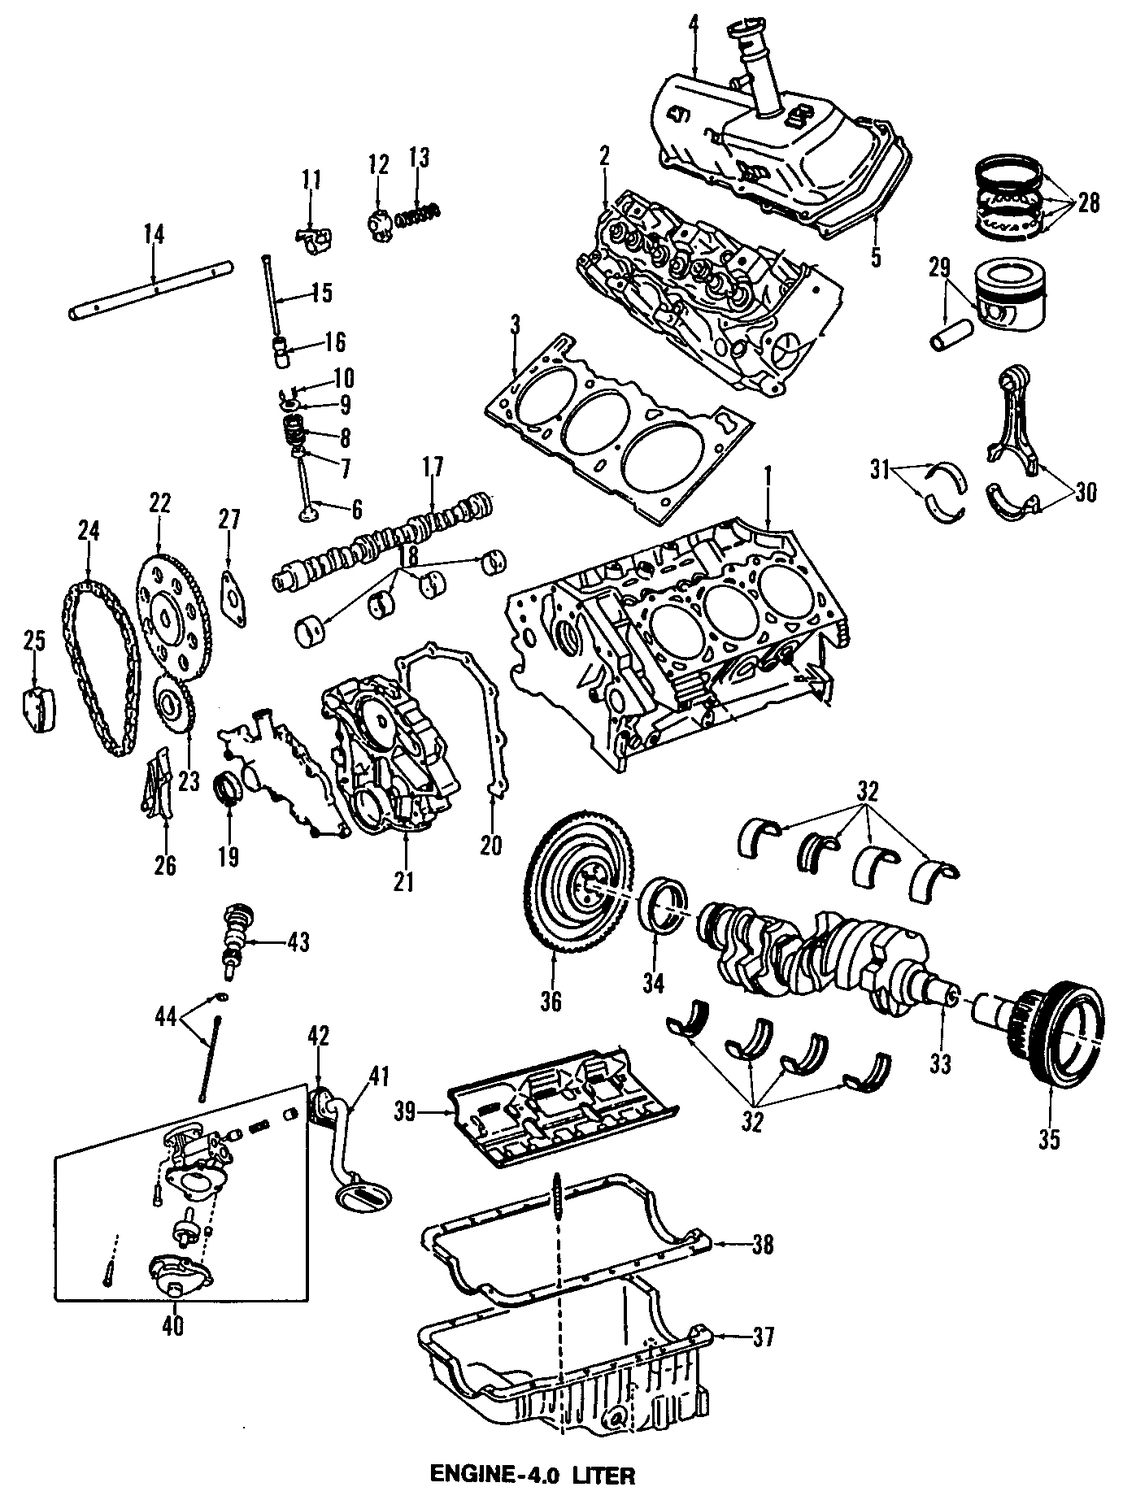 Jeep Engine Camshaft Diagram on jeep liberty power steering diagram, jeep check engine light diagram, 1987 ford f-150 engine diagram, 2004 jeep grand cherokee wire diagram, 1999 jeep cherokee engine diagram, jeep grand cherokee parts diagram, 97 jeep grand cherokee belt routing diagram, jeep 4 6 stroker kit, jeep 4.7 engine diagram, jeep engine swap, jeep engine parts, 1996 jeep cherokee engine diagram, 2006 jeep wrangler oxygen sensor diagram, 40 jeep engine diagram, 98 jeep cherokee engine diagram, amc 304 jeep engine diagram, 2000 jeep cherokee sport front end diagram, jeep compass engine diagram, jeep 4.2 engine vacuum diagram, 2000 jeep cherokee engine diagram,